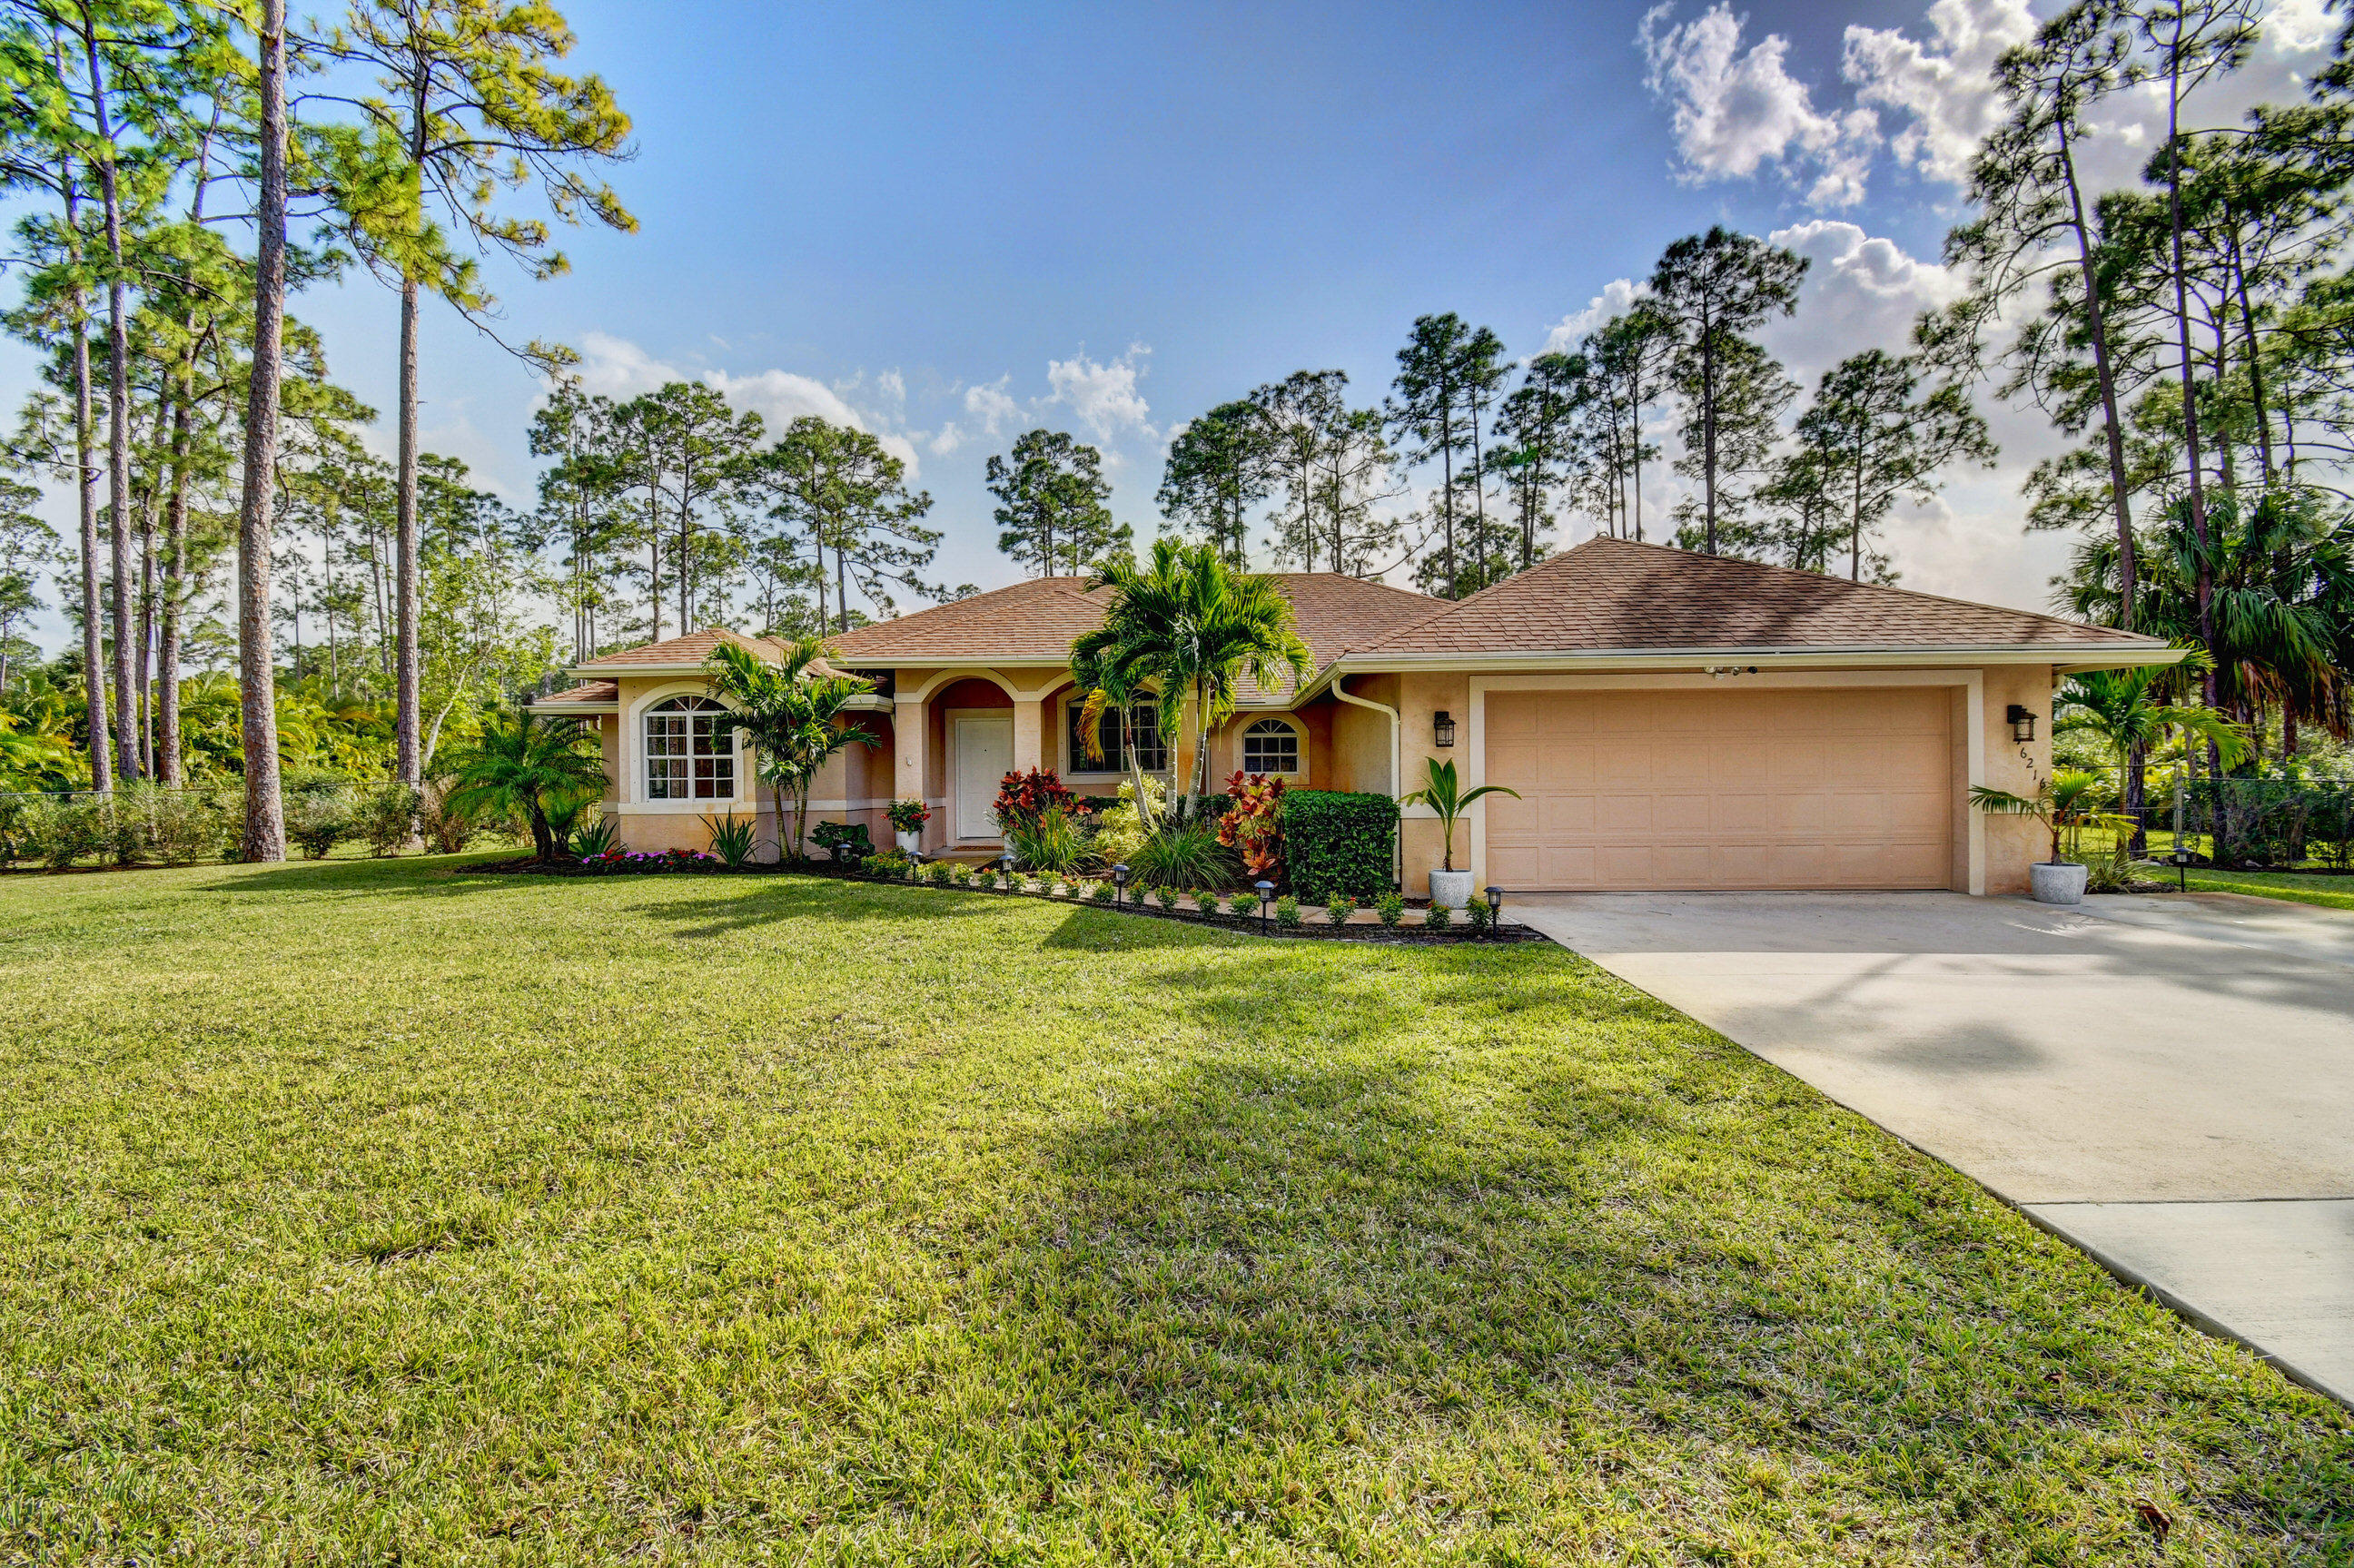 16216 89th Place N, Loxahatchee in Palm Beach County, FL 33470 Home for Sale